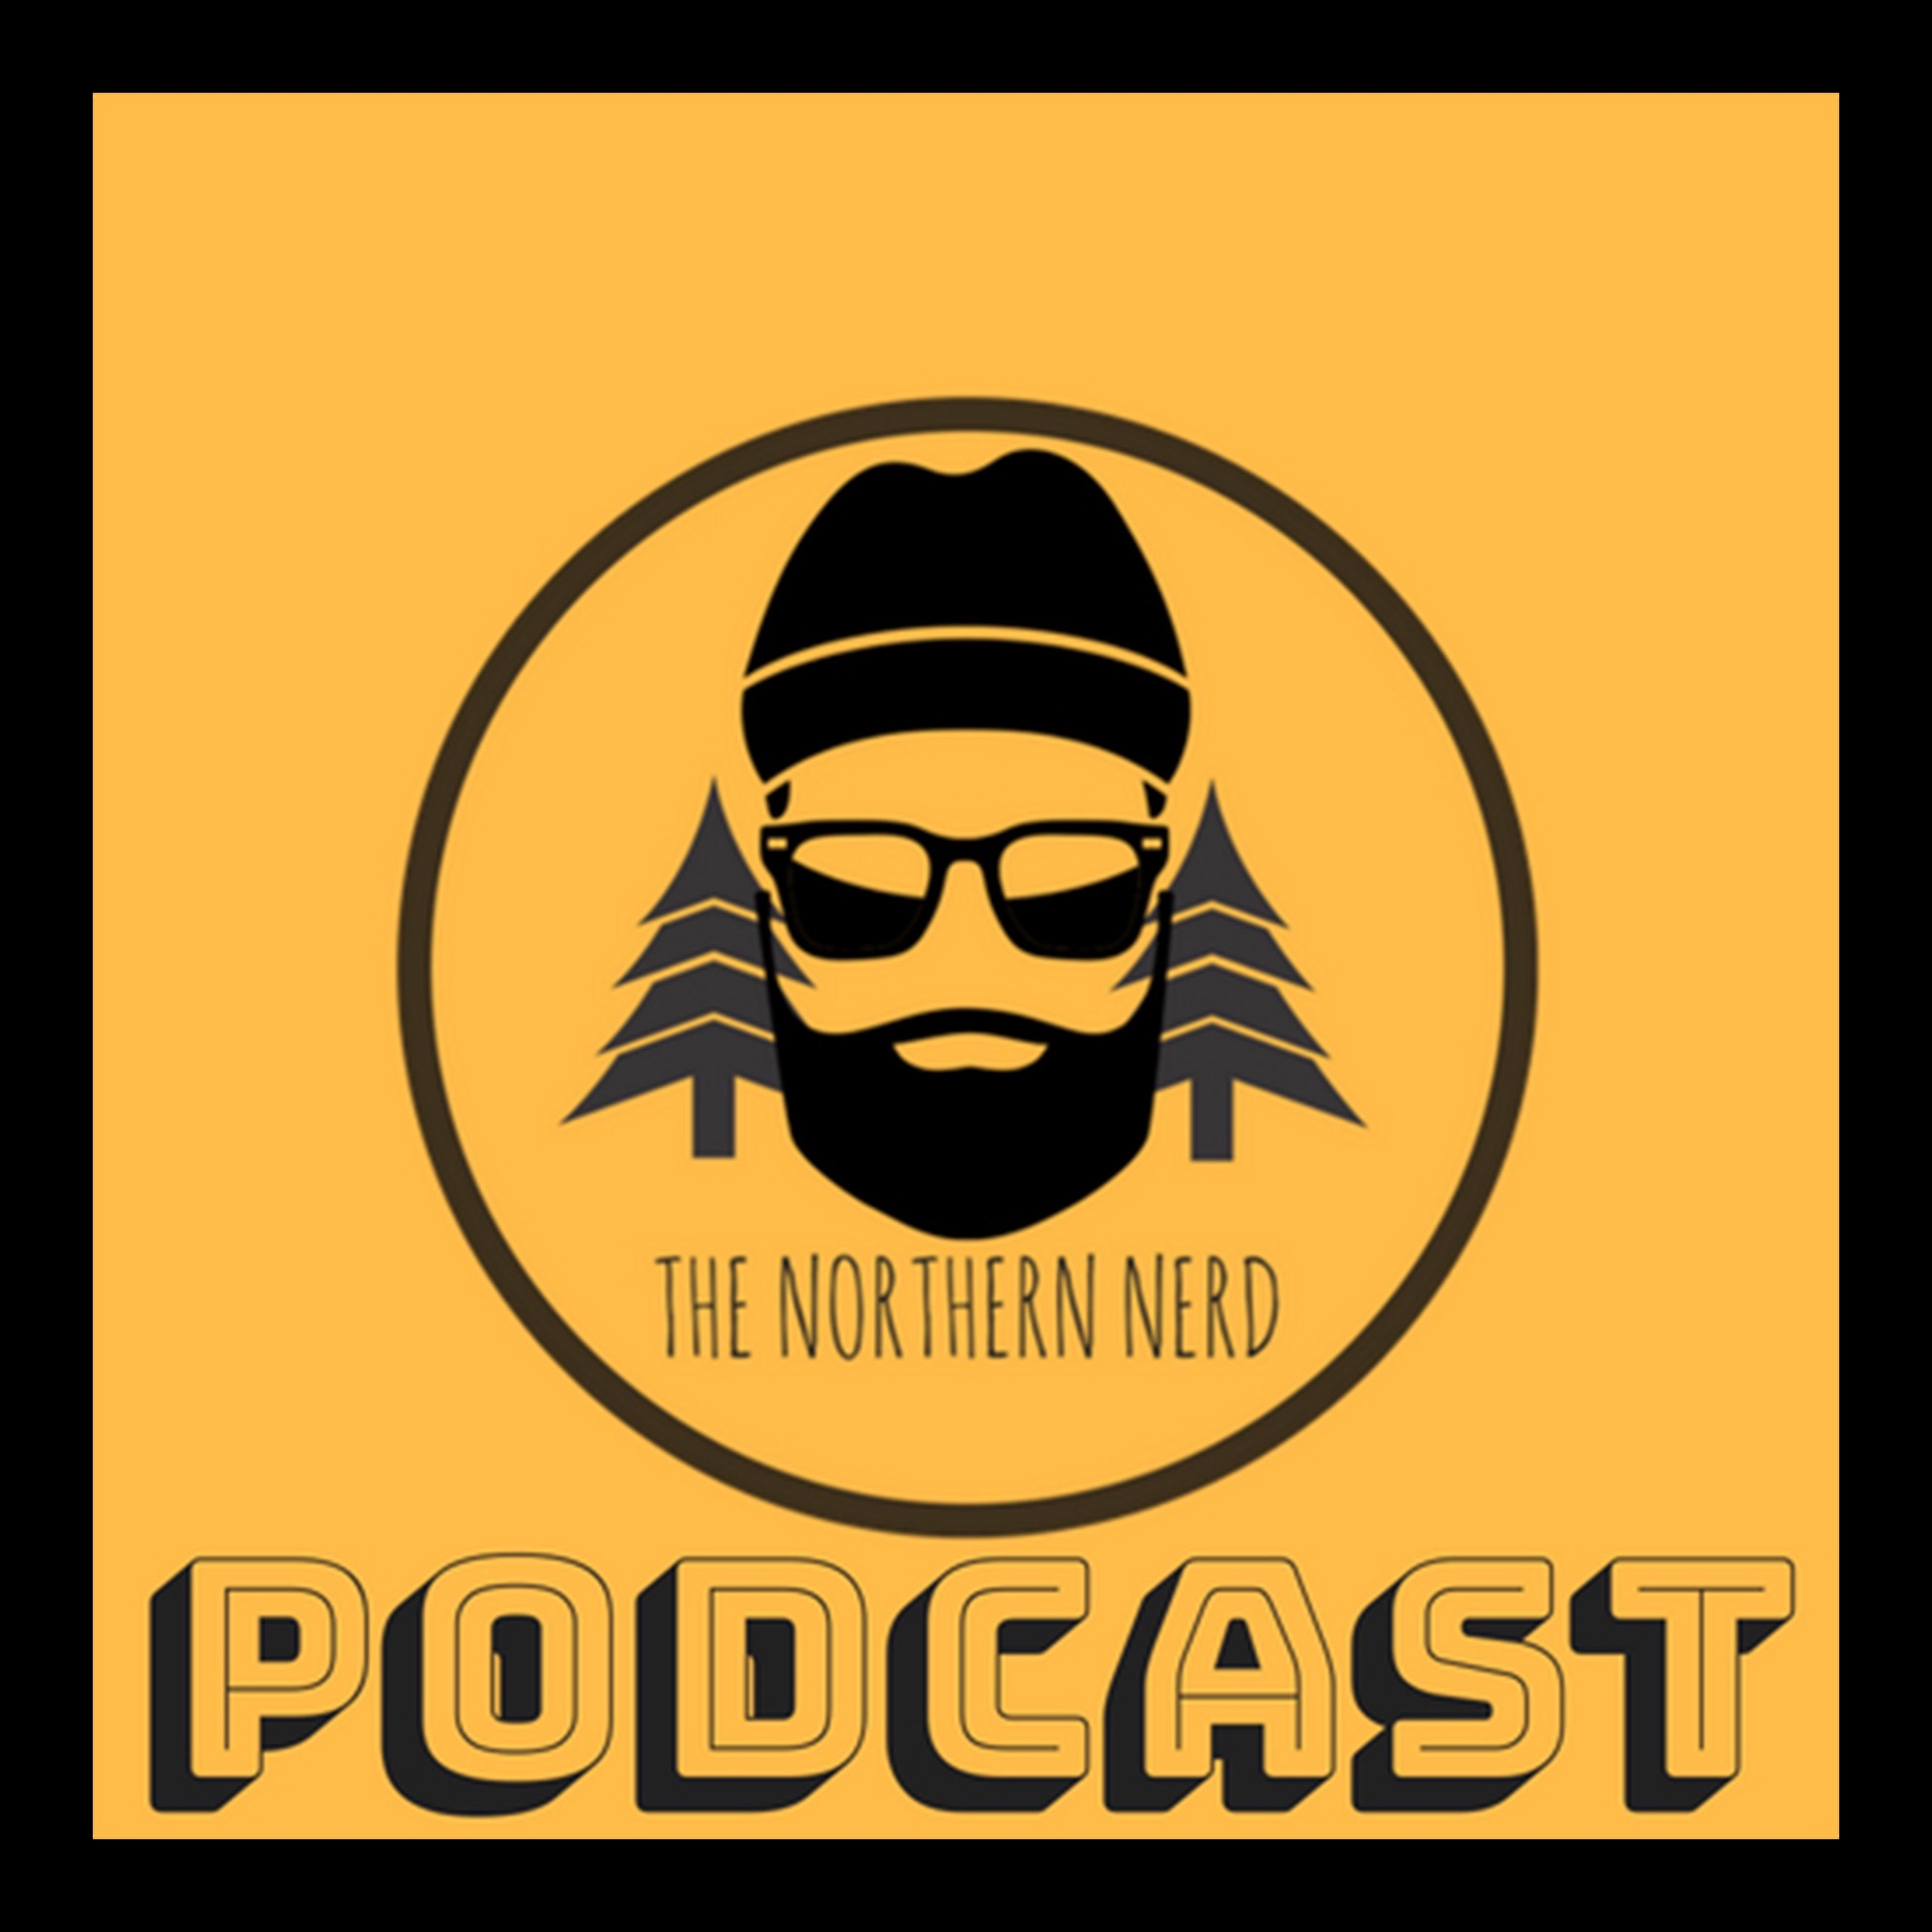 Episode 3: The Journey Back From Pittsburgh